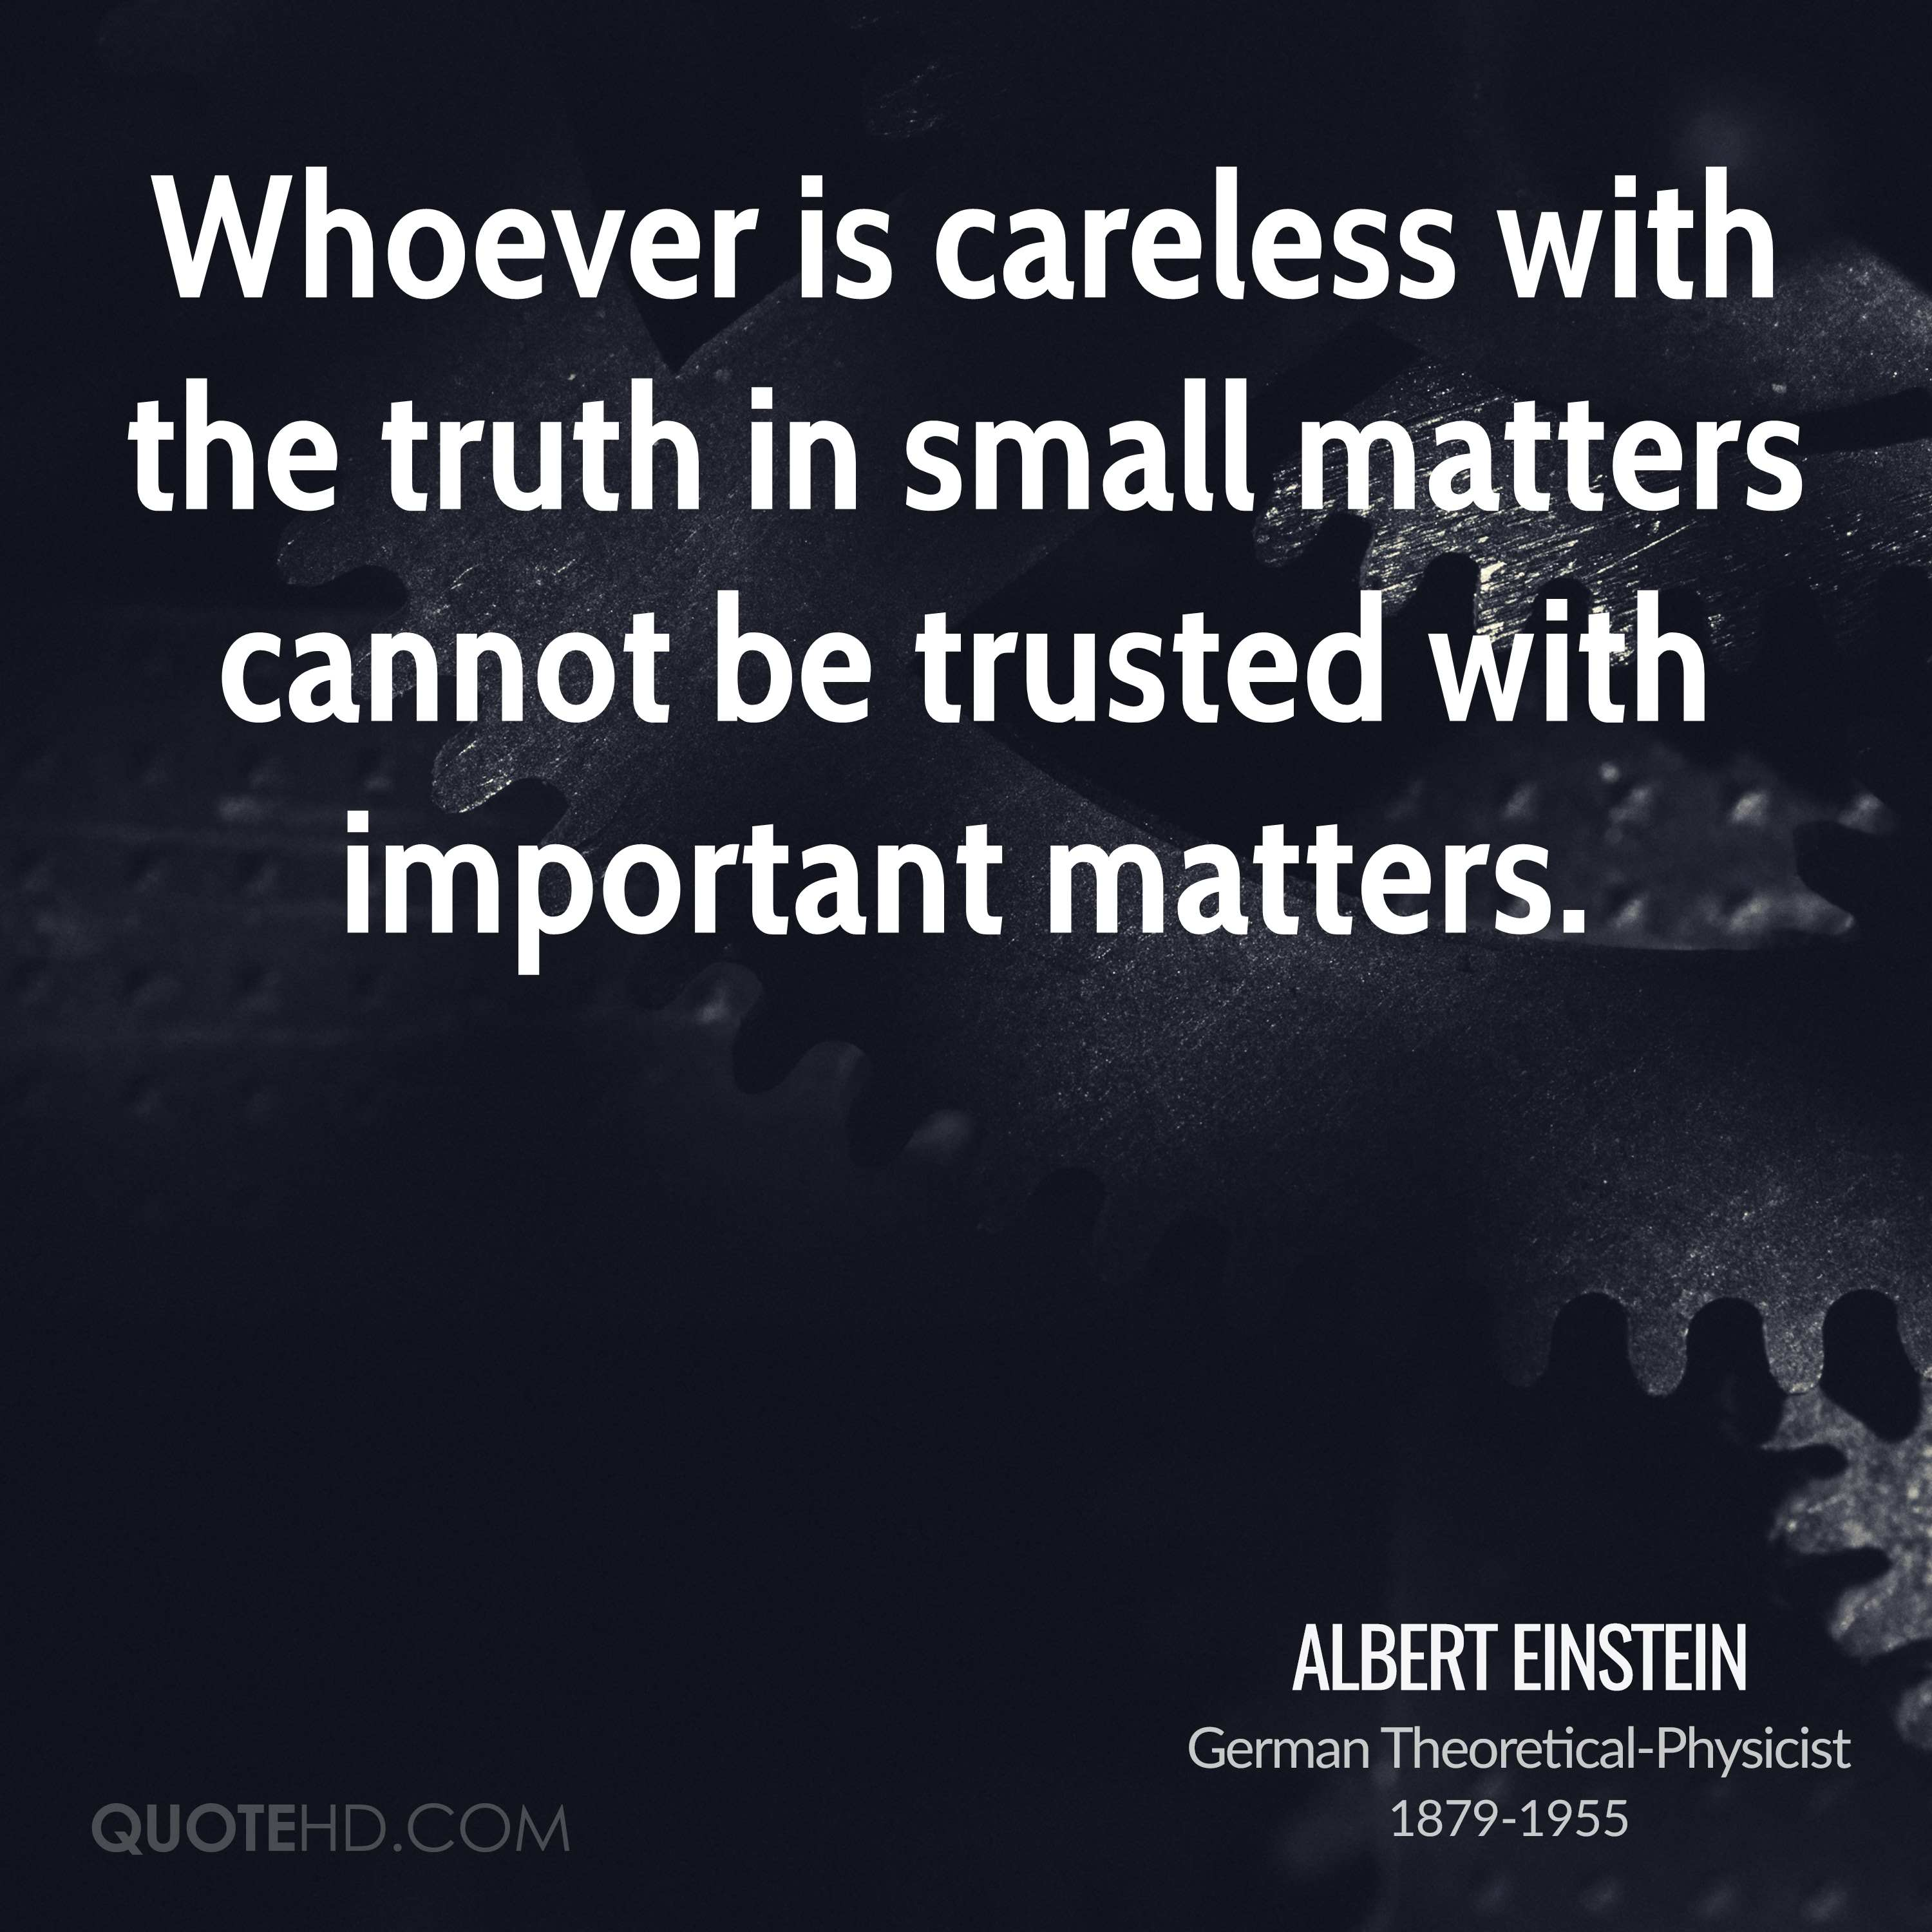 Whoever is careless with the truth in small matters cannot be trusted with important matters.